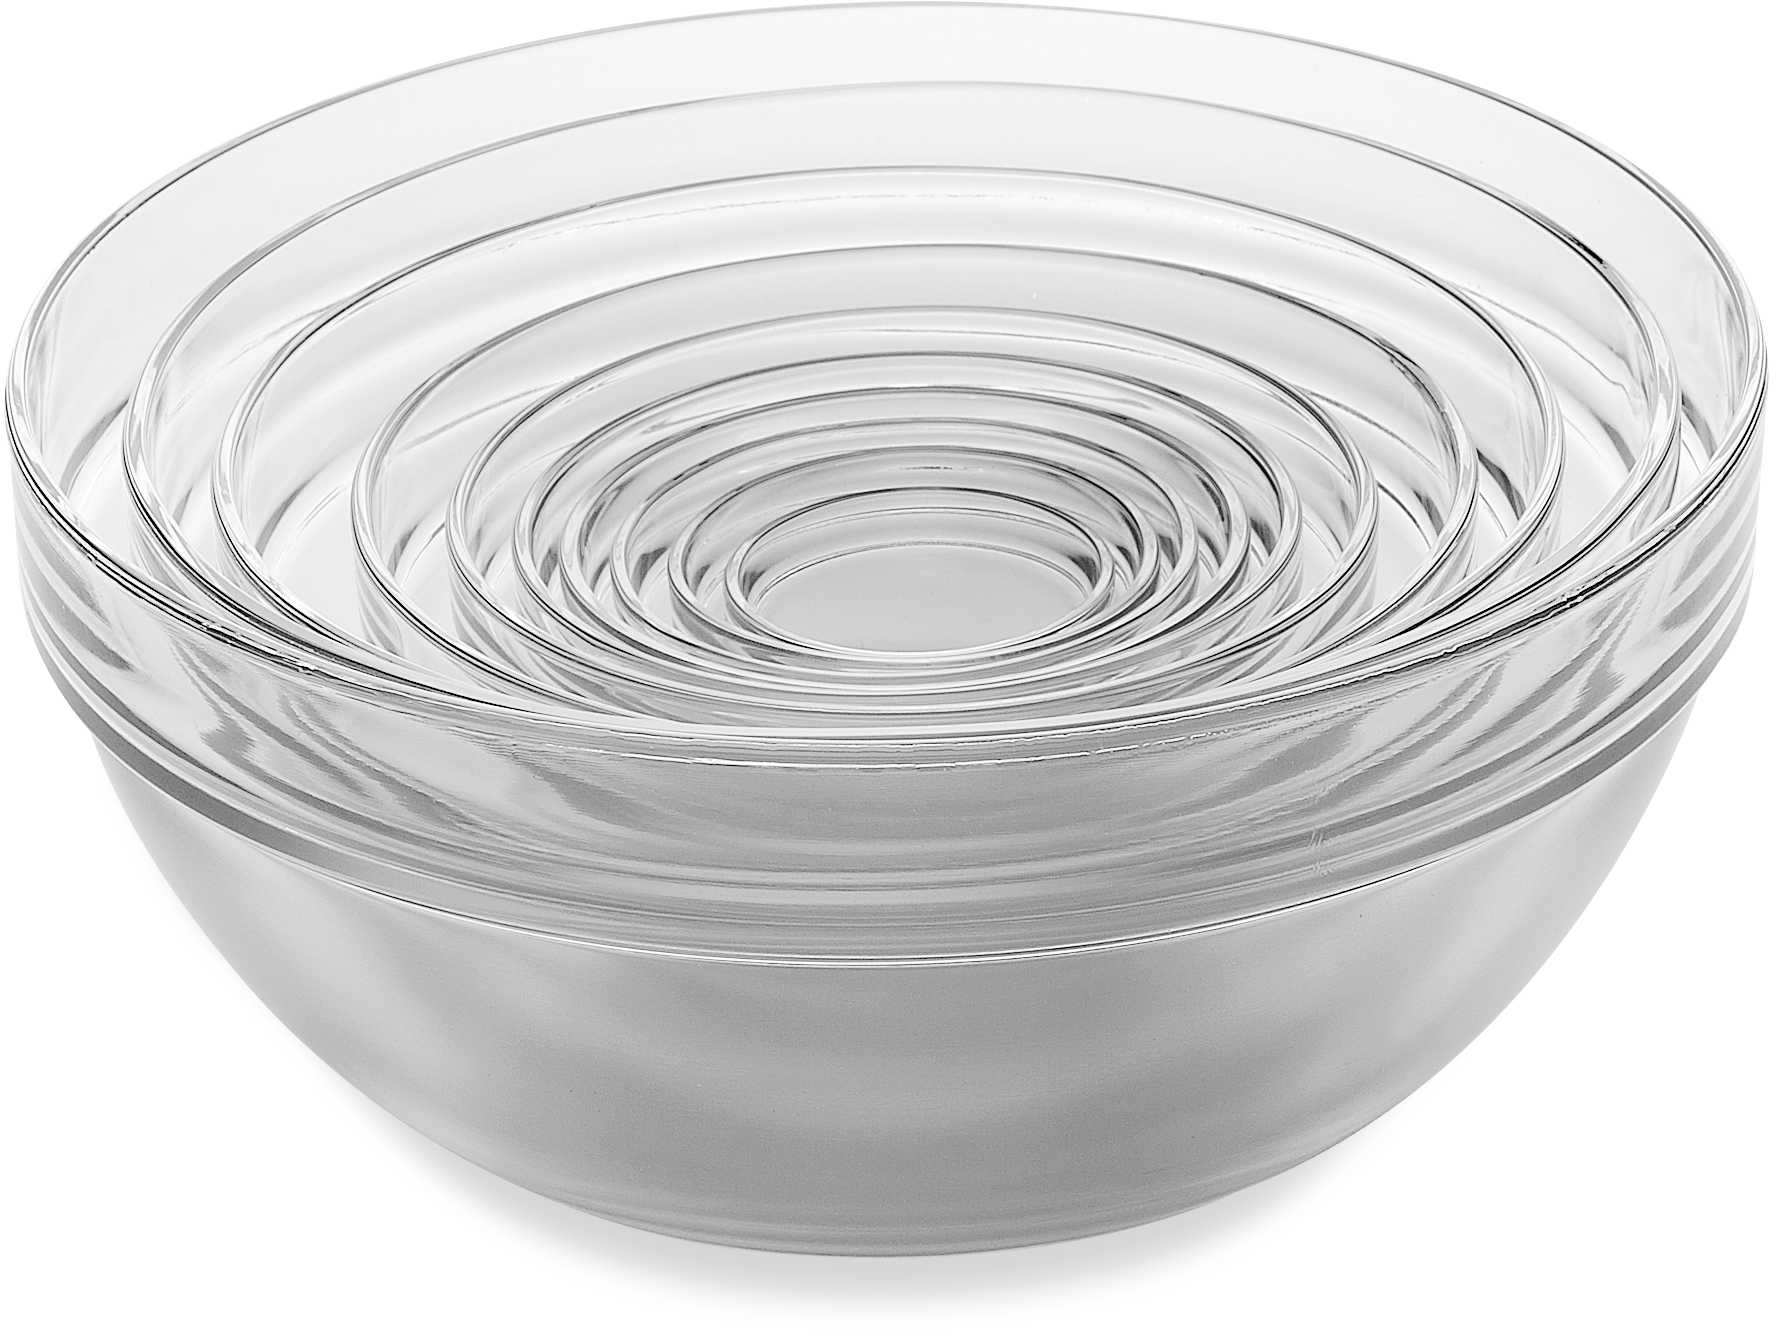 10-Piece Tempered Glass Nesting Mixing and Prep Bowl Set - Bed Bath & Beyond